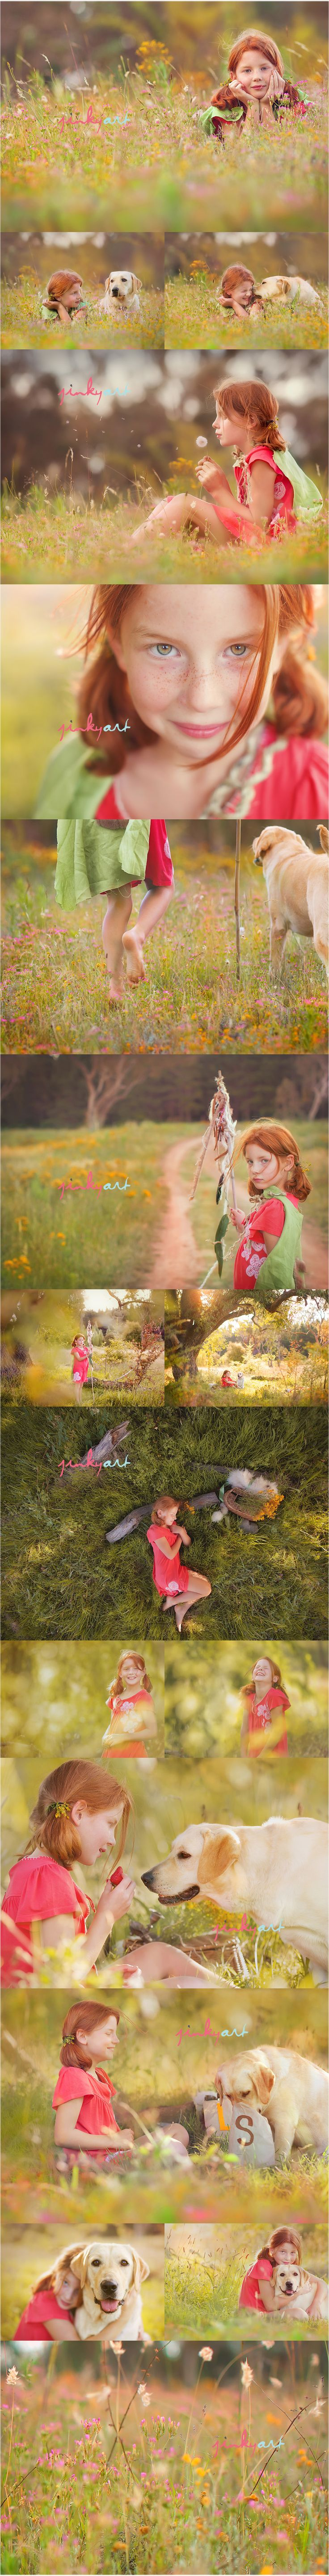 YES!!! Love love love love love (I have a thing for red headed little girls! )  Jinkyart photos <3 <3